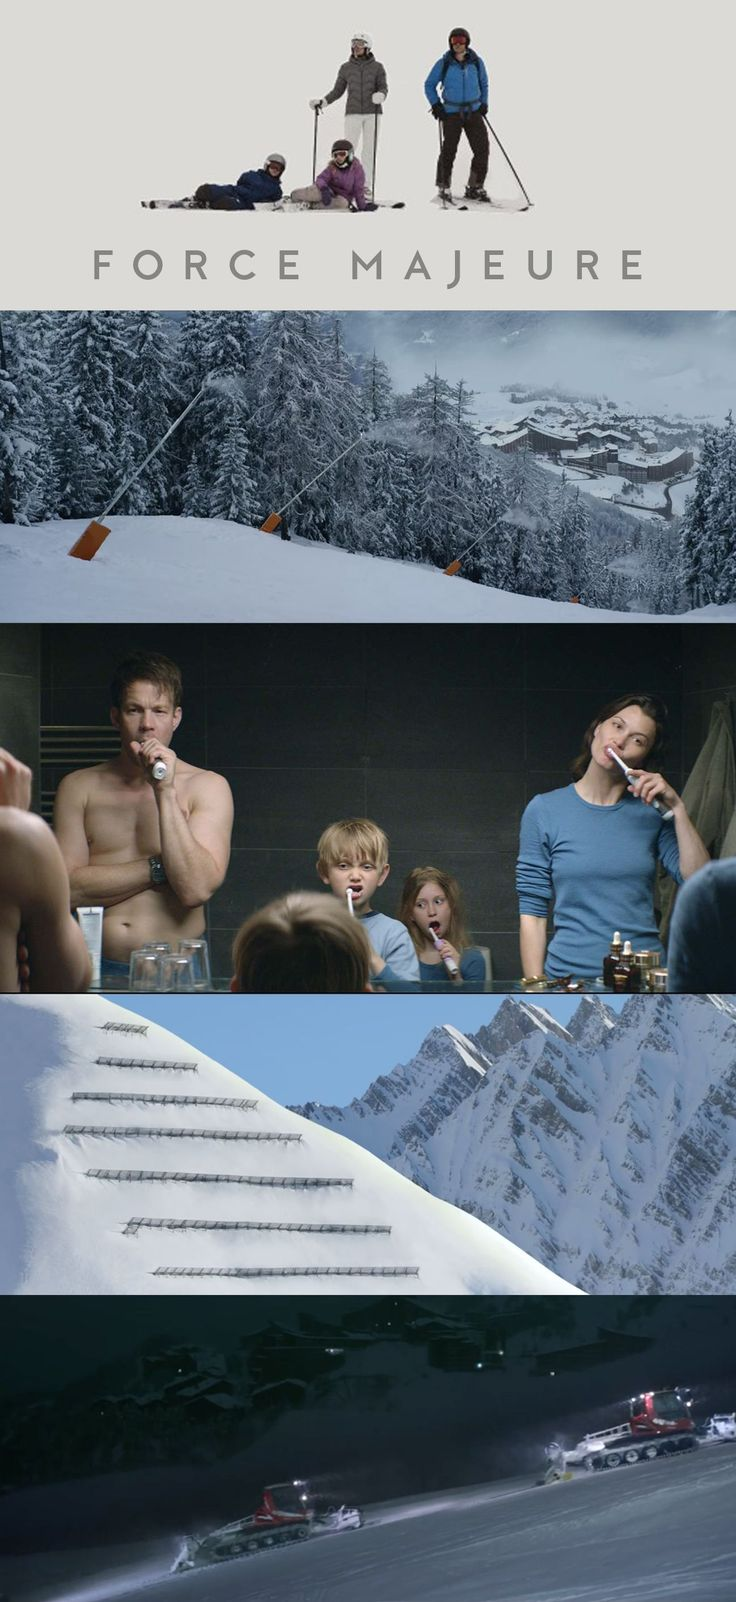 Art direction and cinematography of Force Majeure. Full film review on the blog. #FilmSchoolsReview